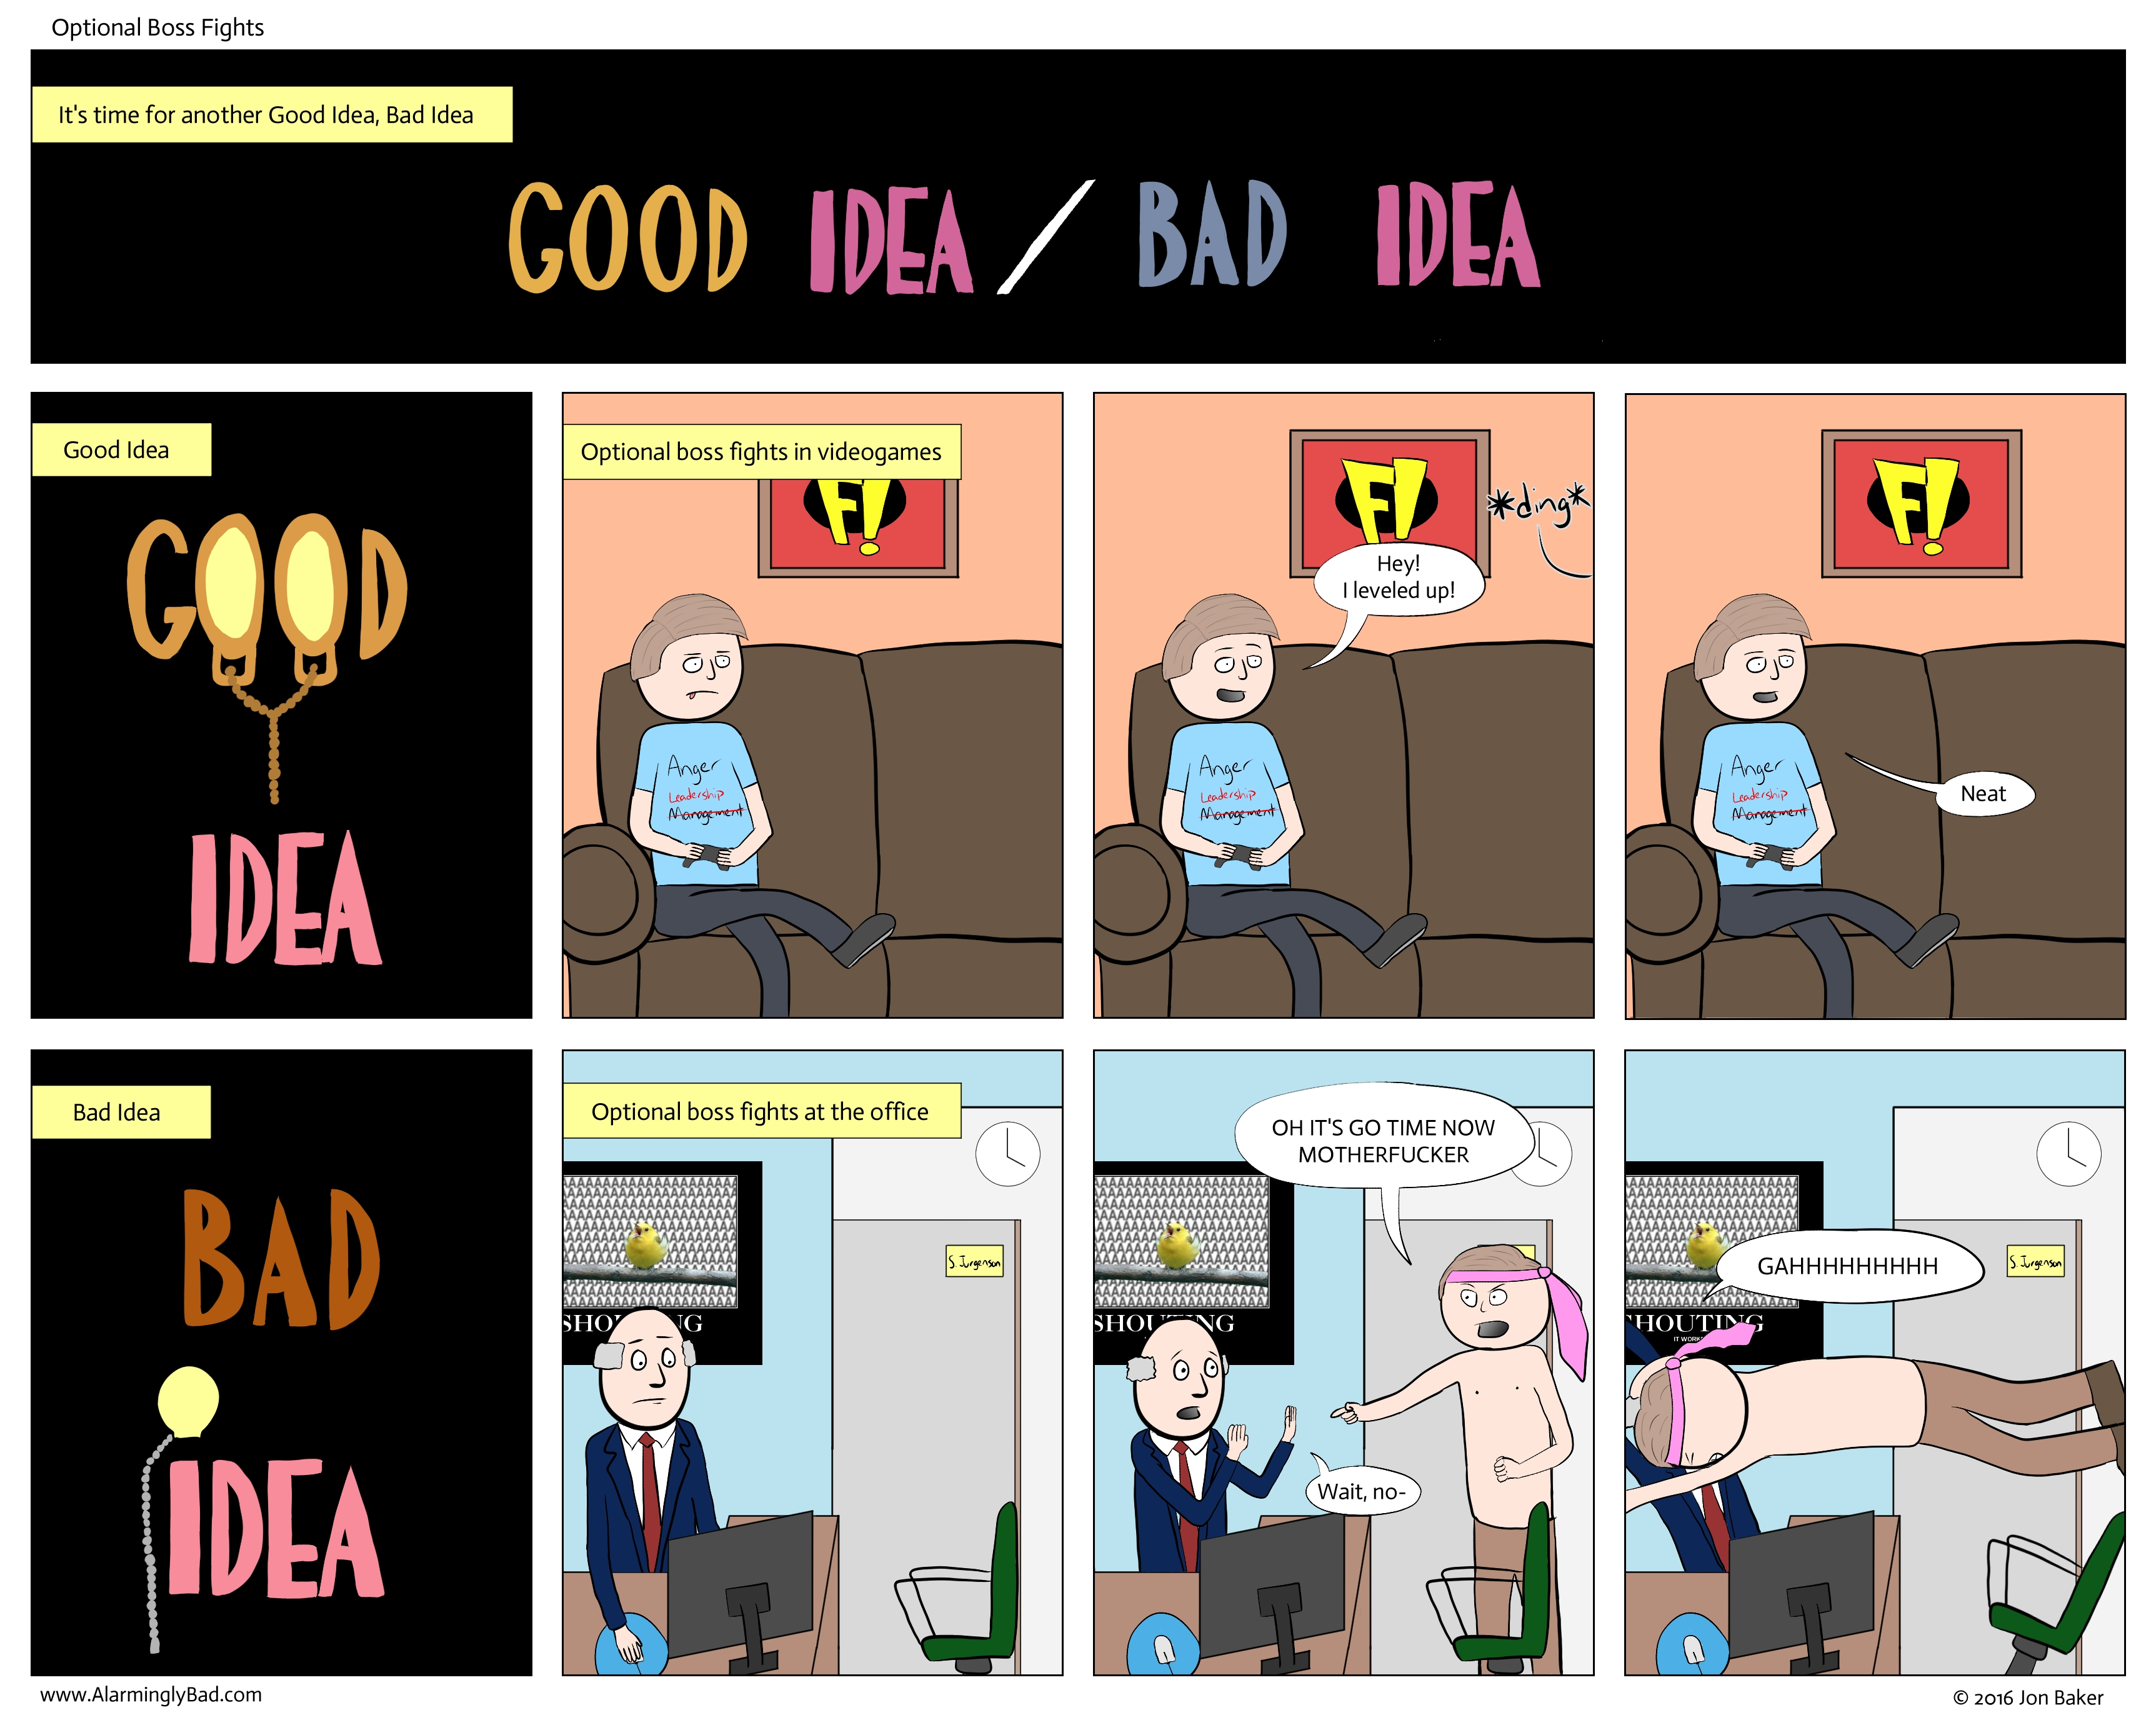 10 Elegant Good Idea Bad Idea Animaniacs optional boss fights alarmingly bad 1